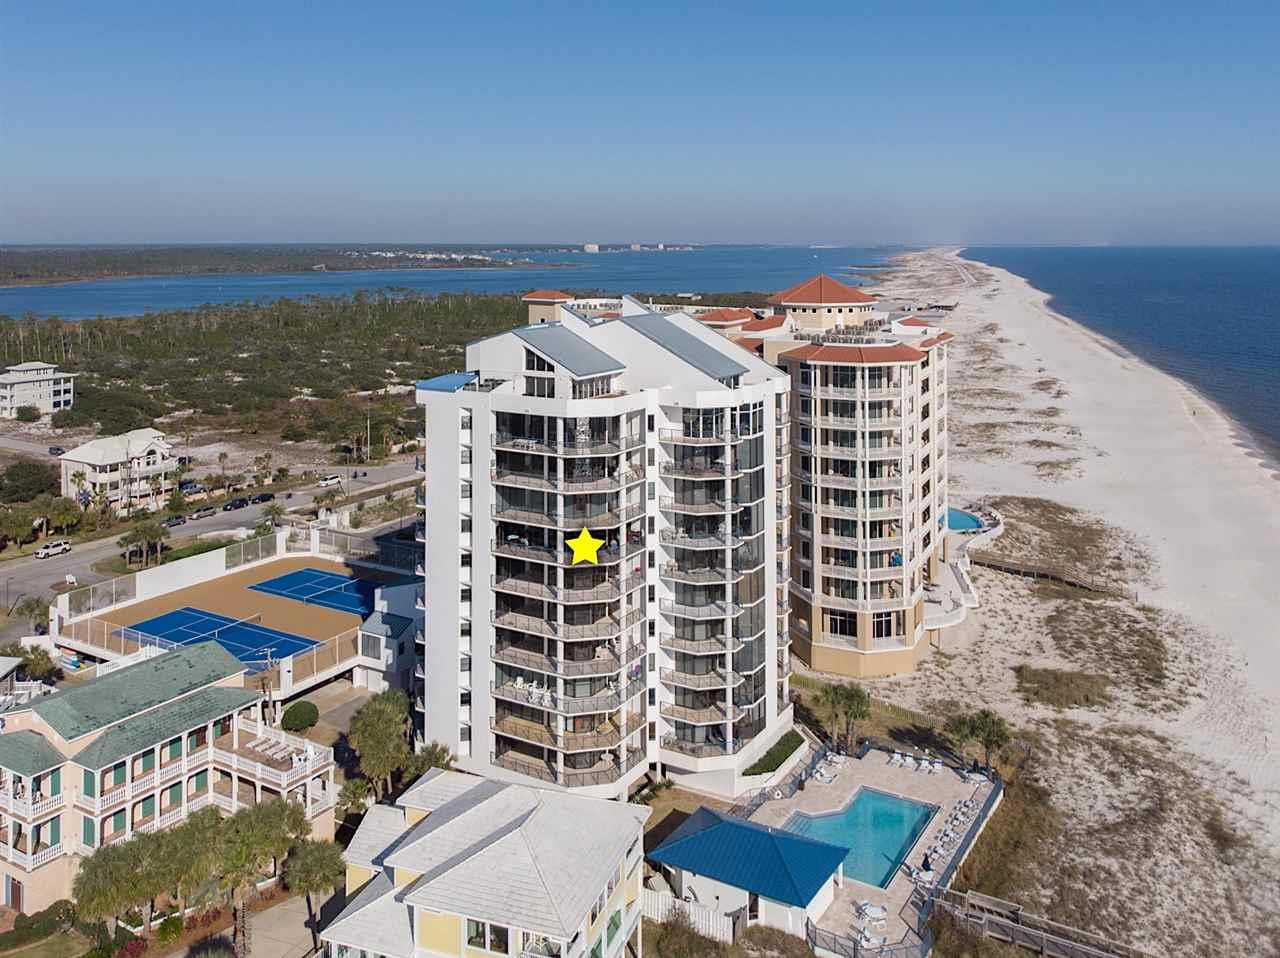 13335 JOHNSON BEACH RD #703, PERDIDO KEY, FL